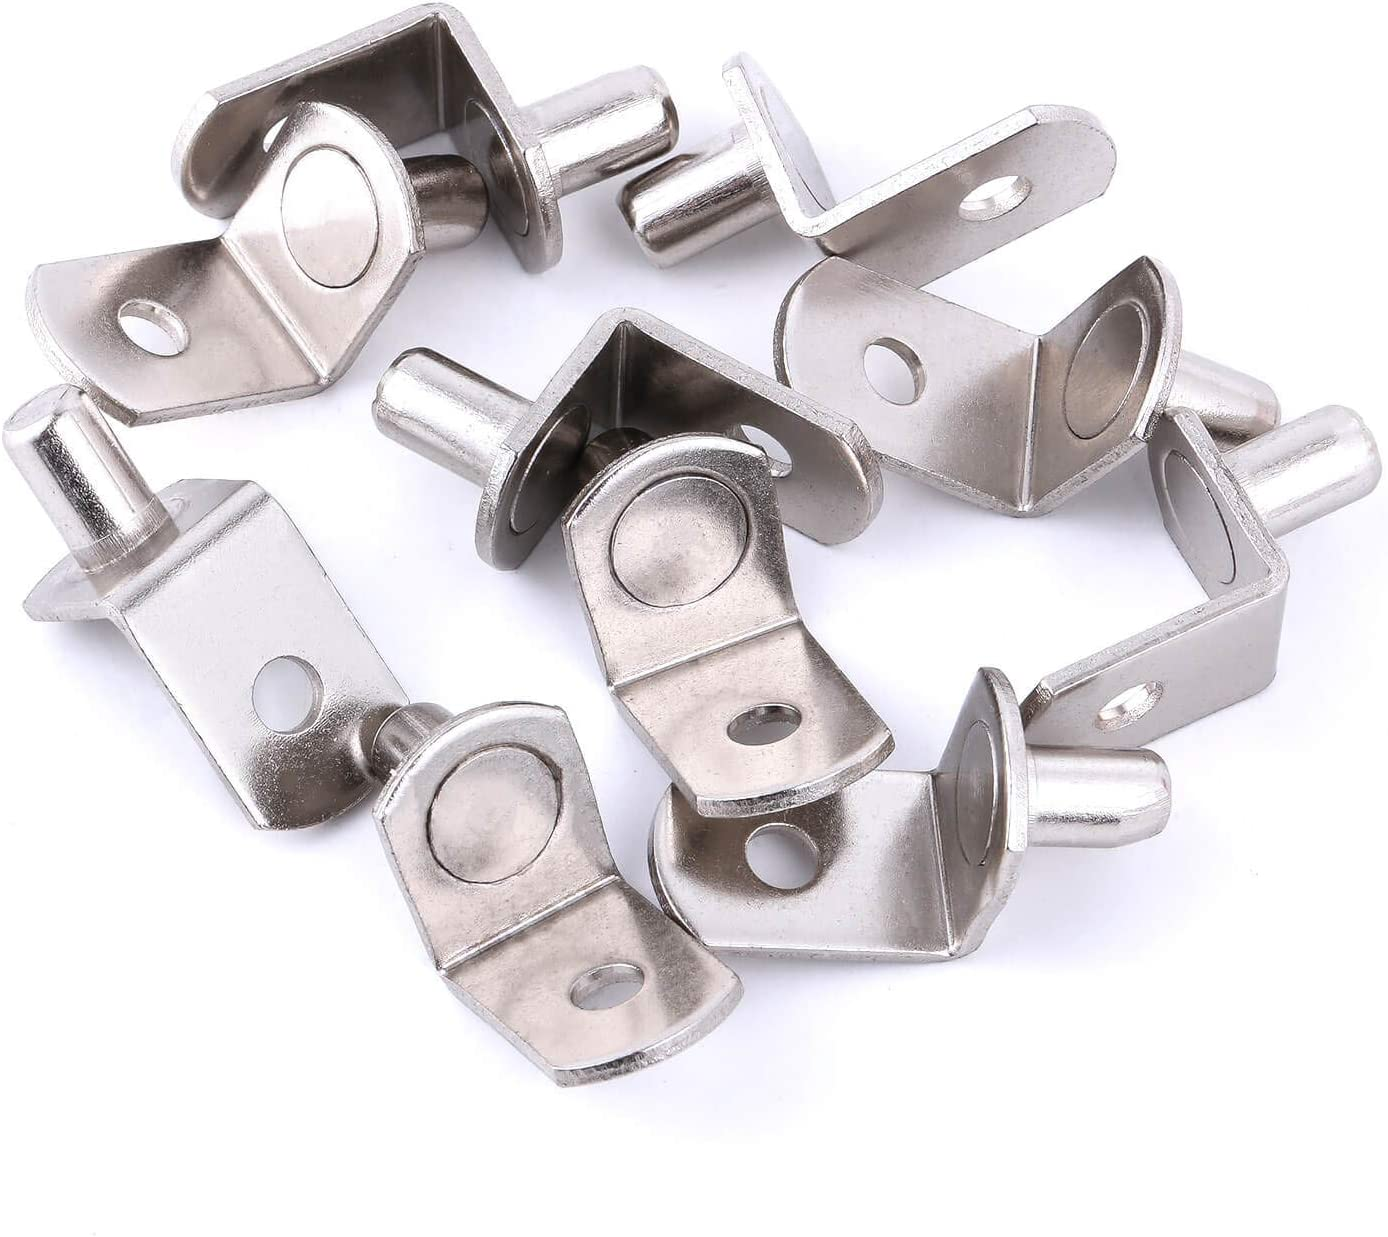 Nickel Polished 1//4 25pcs Kitchen Cabinet and Closet 6mm Cabinet Shelf Pegs L-Shaped Clips for Bookcase Shelf Pegs with Hole